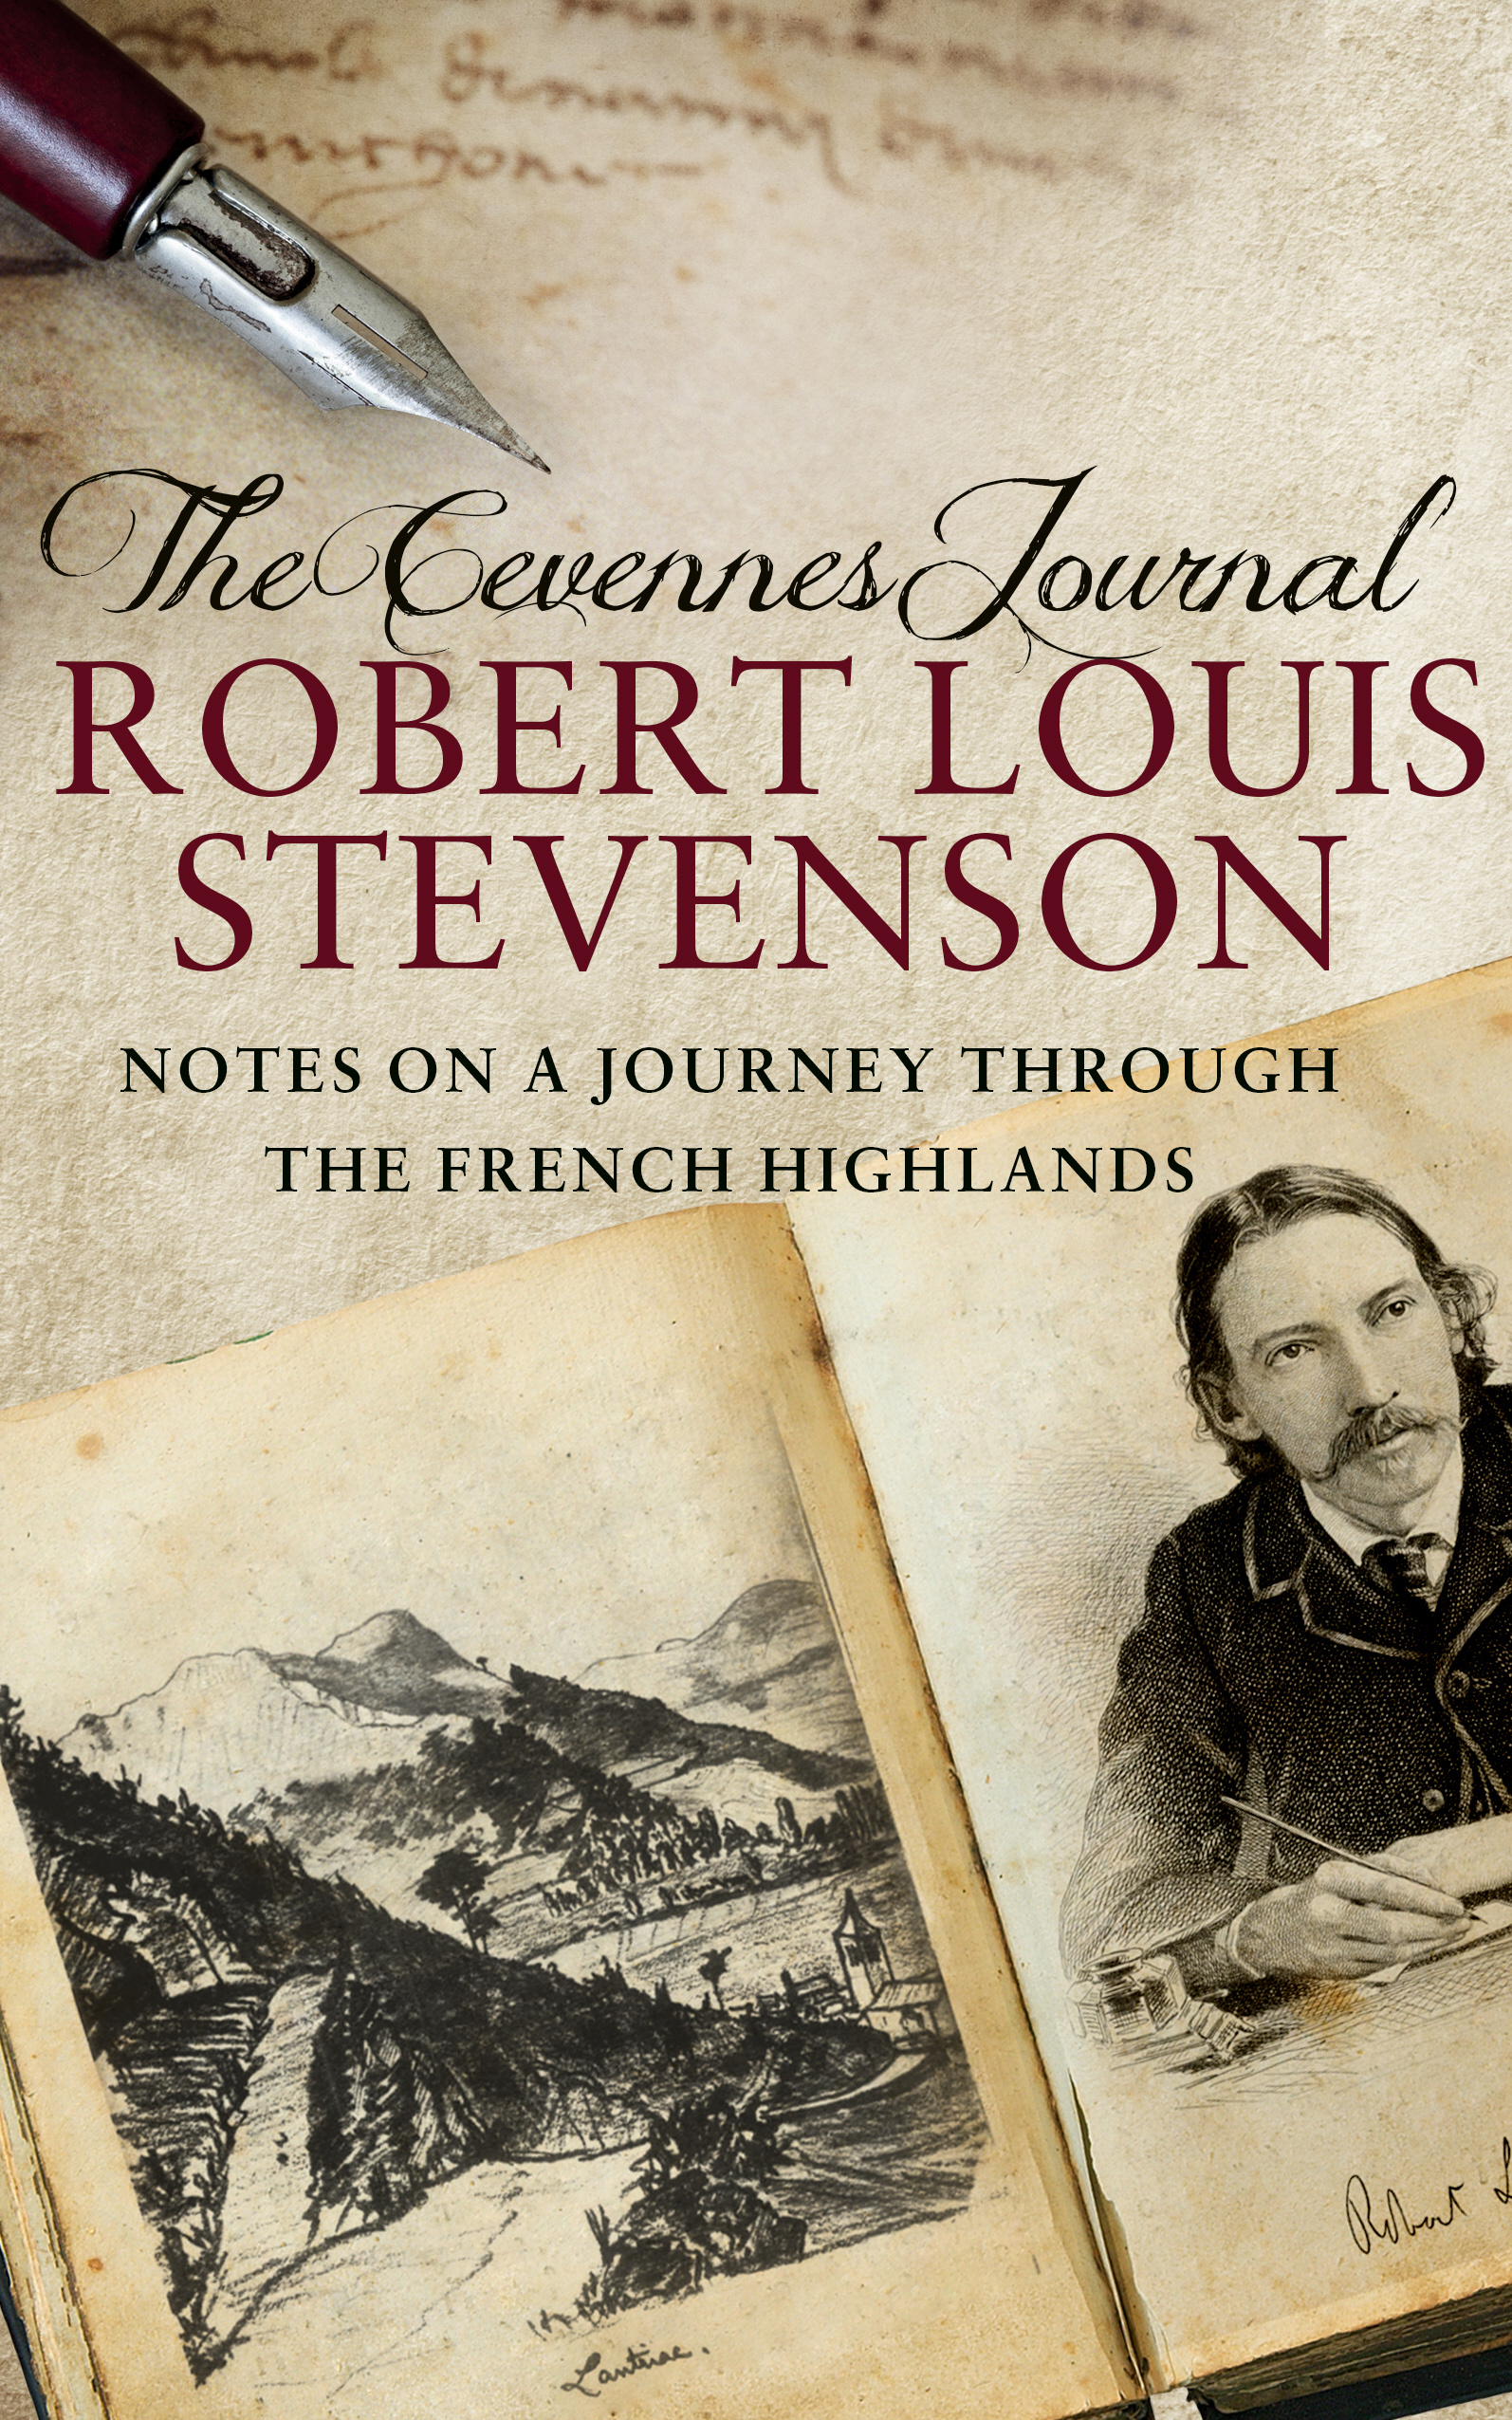 The Cevennes Journal Notes on a Journey Through the French Highlands